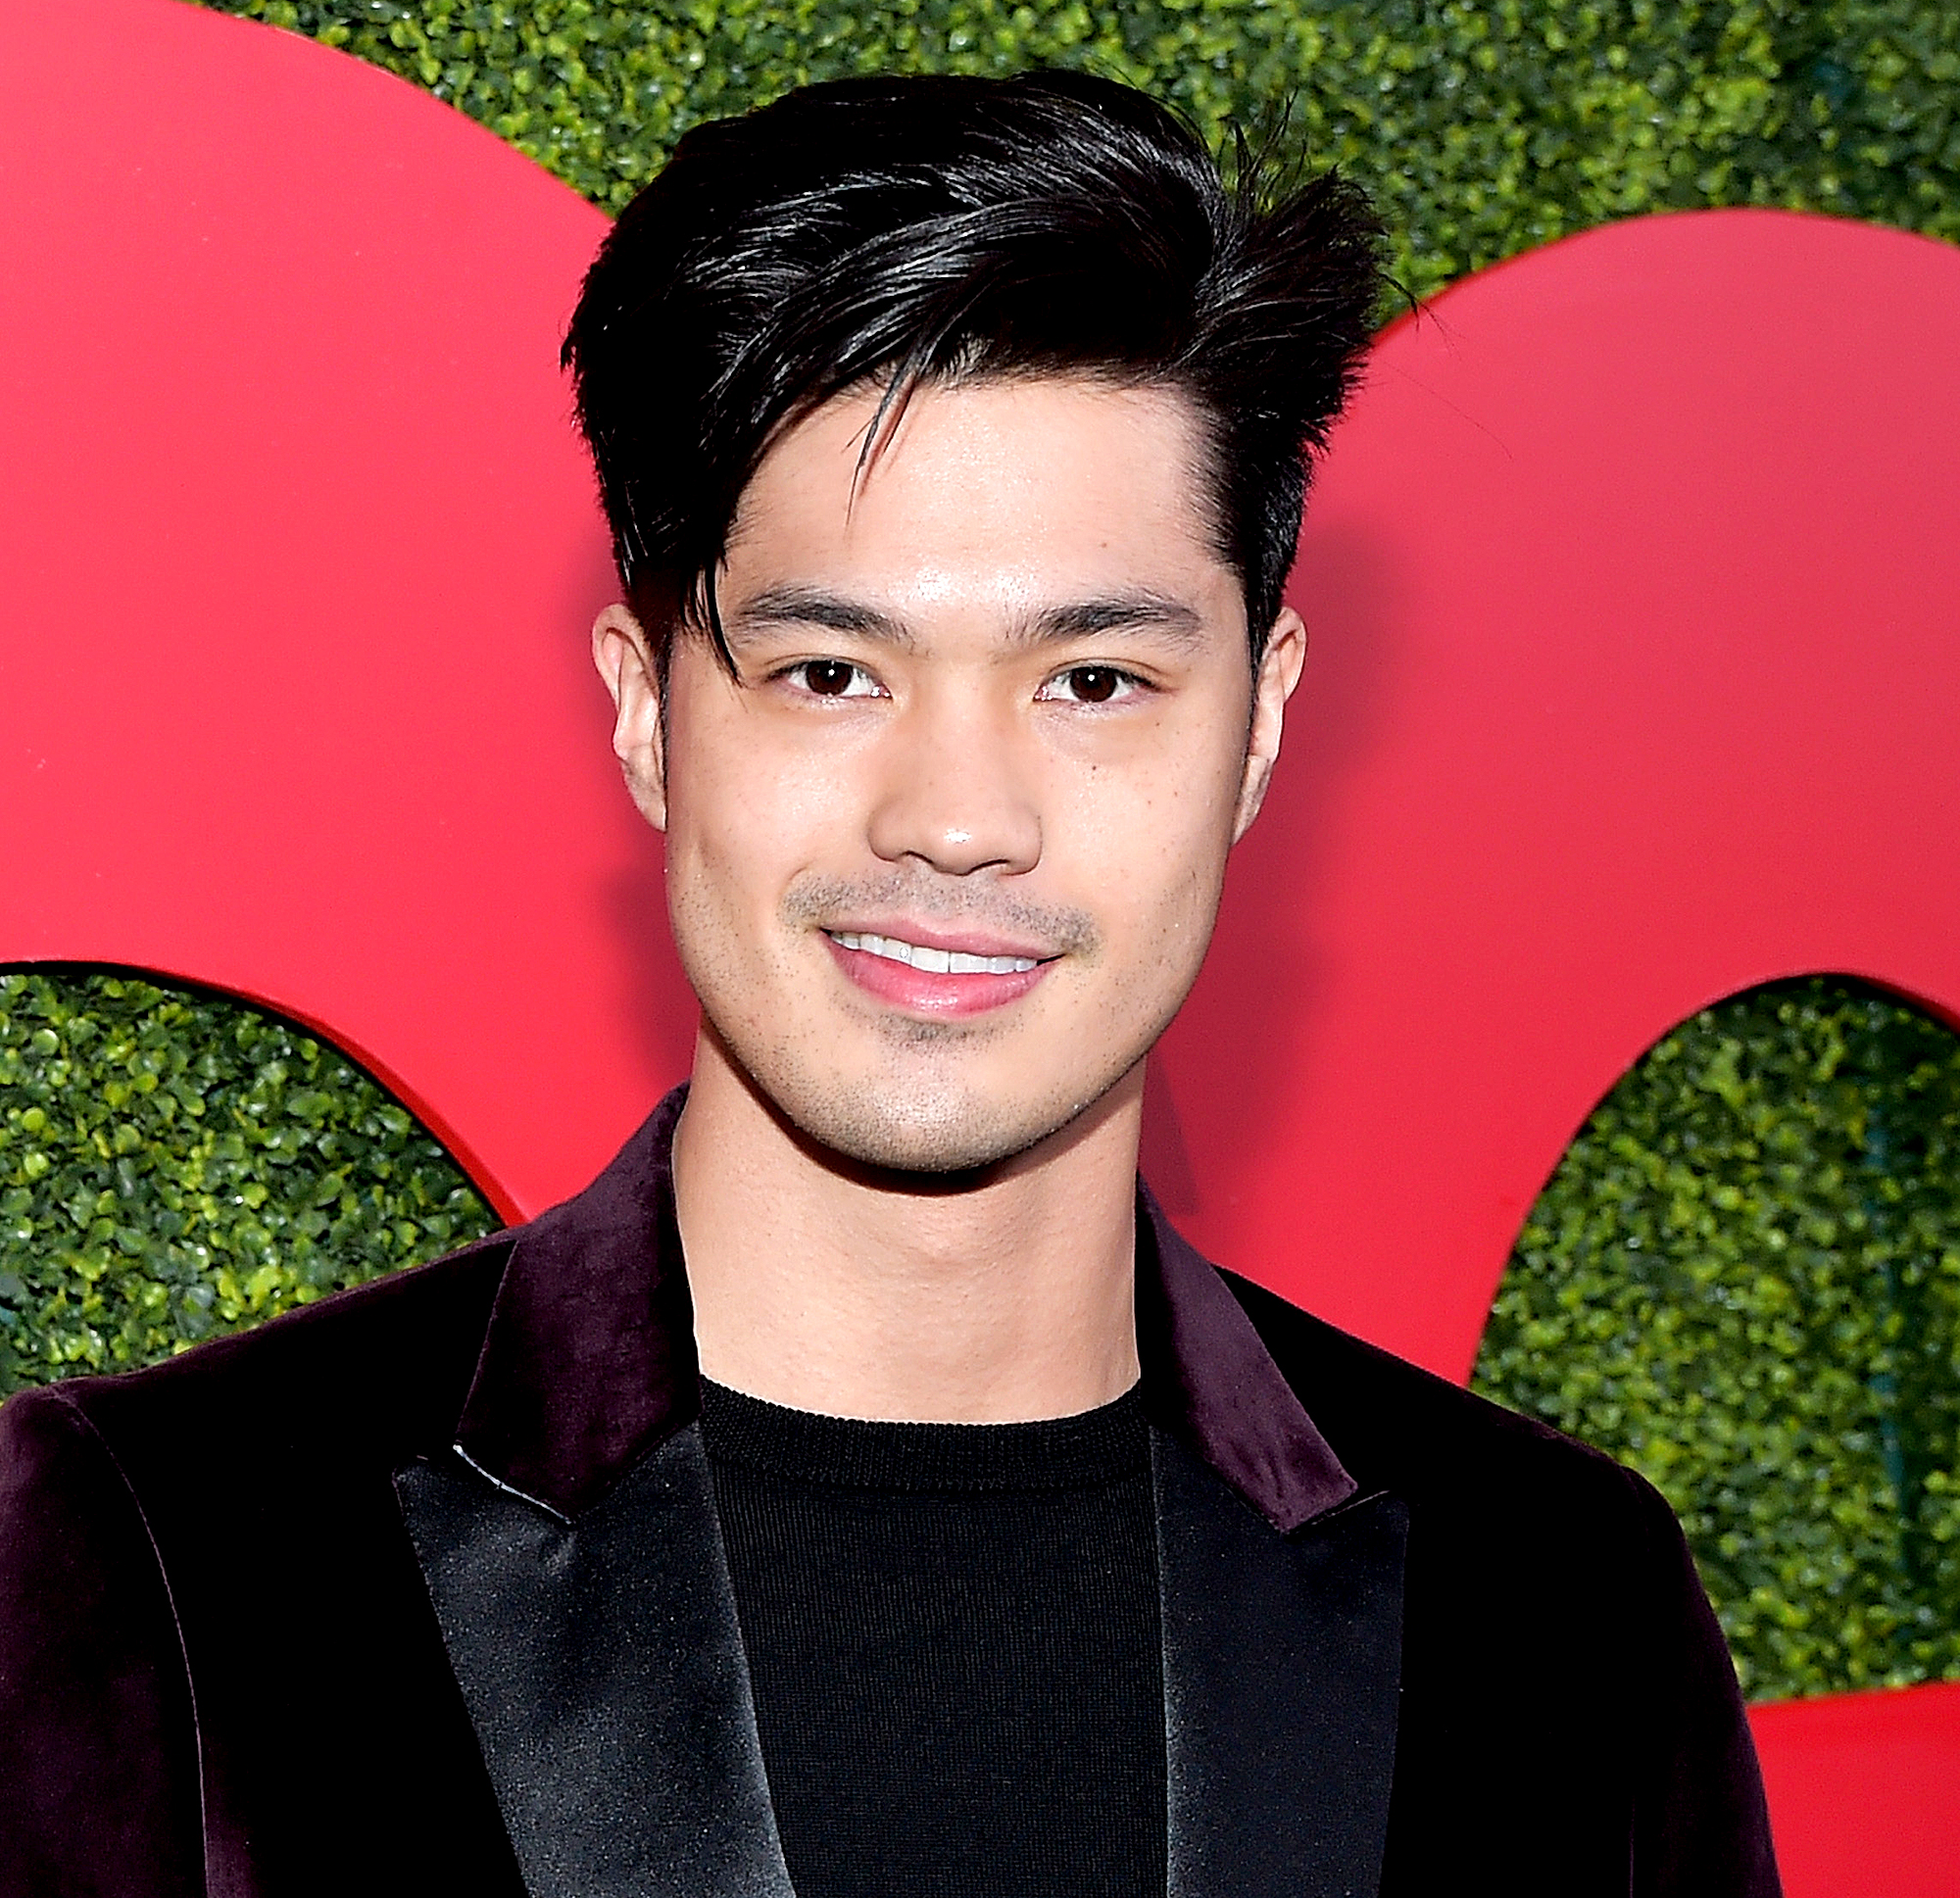 """ross-butler-To-All-the-Boys-I've-Loved-Before-sequel - 13 Reasons Why star Ross Butler , one of Centineo's pals in real life, will play Trevor Pike in the sequel. """"His real-life friendship with Noah brings a natural chemistry and great rapport to the set,"""" producer Matt Kaplan told Entertainment Weekly ."""